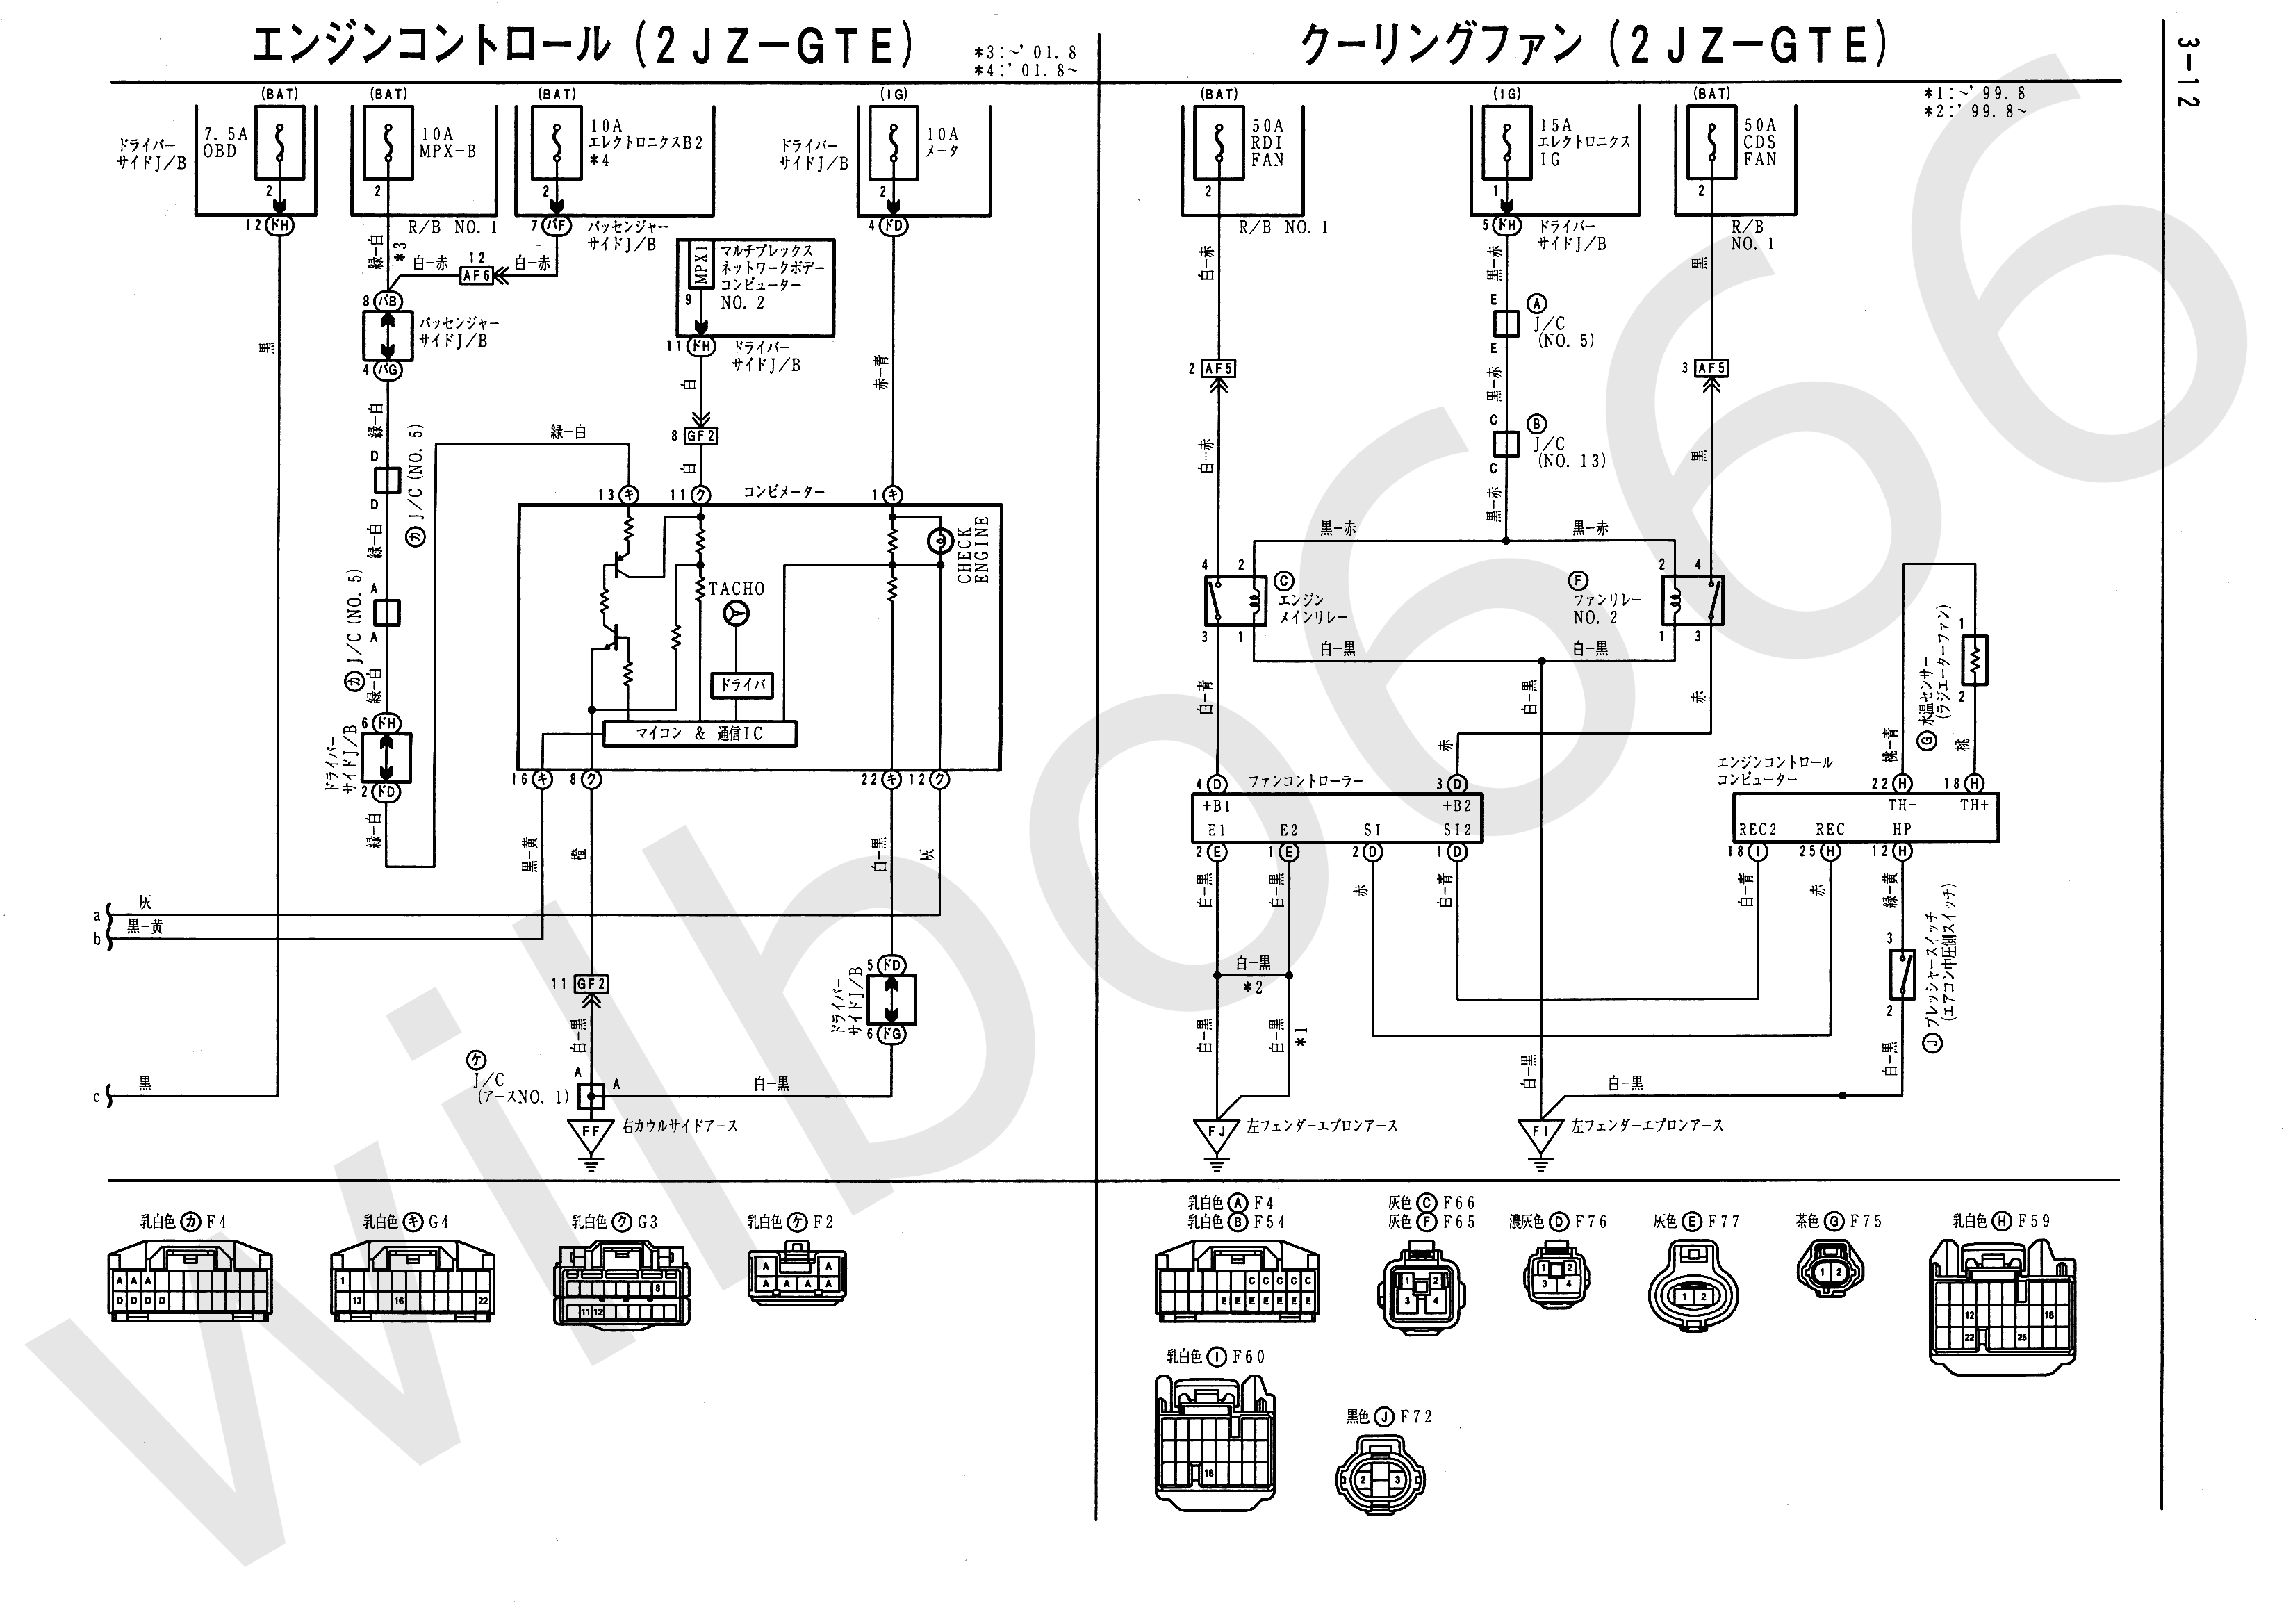 JZS161 Electrical Wiring Diagram 6748505 3 12?resize\\\=665%2C471 ge dryer motor replacement appliance aid on ge motor wiring electric motor we17x10010 wiring diagram at fashall.co